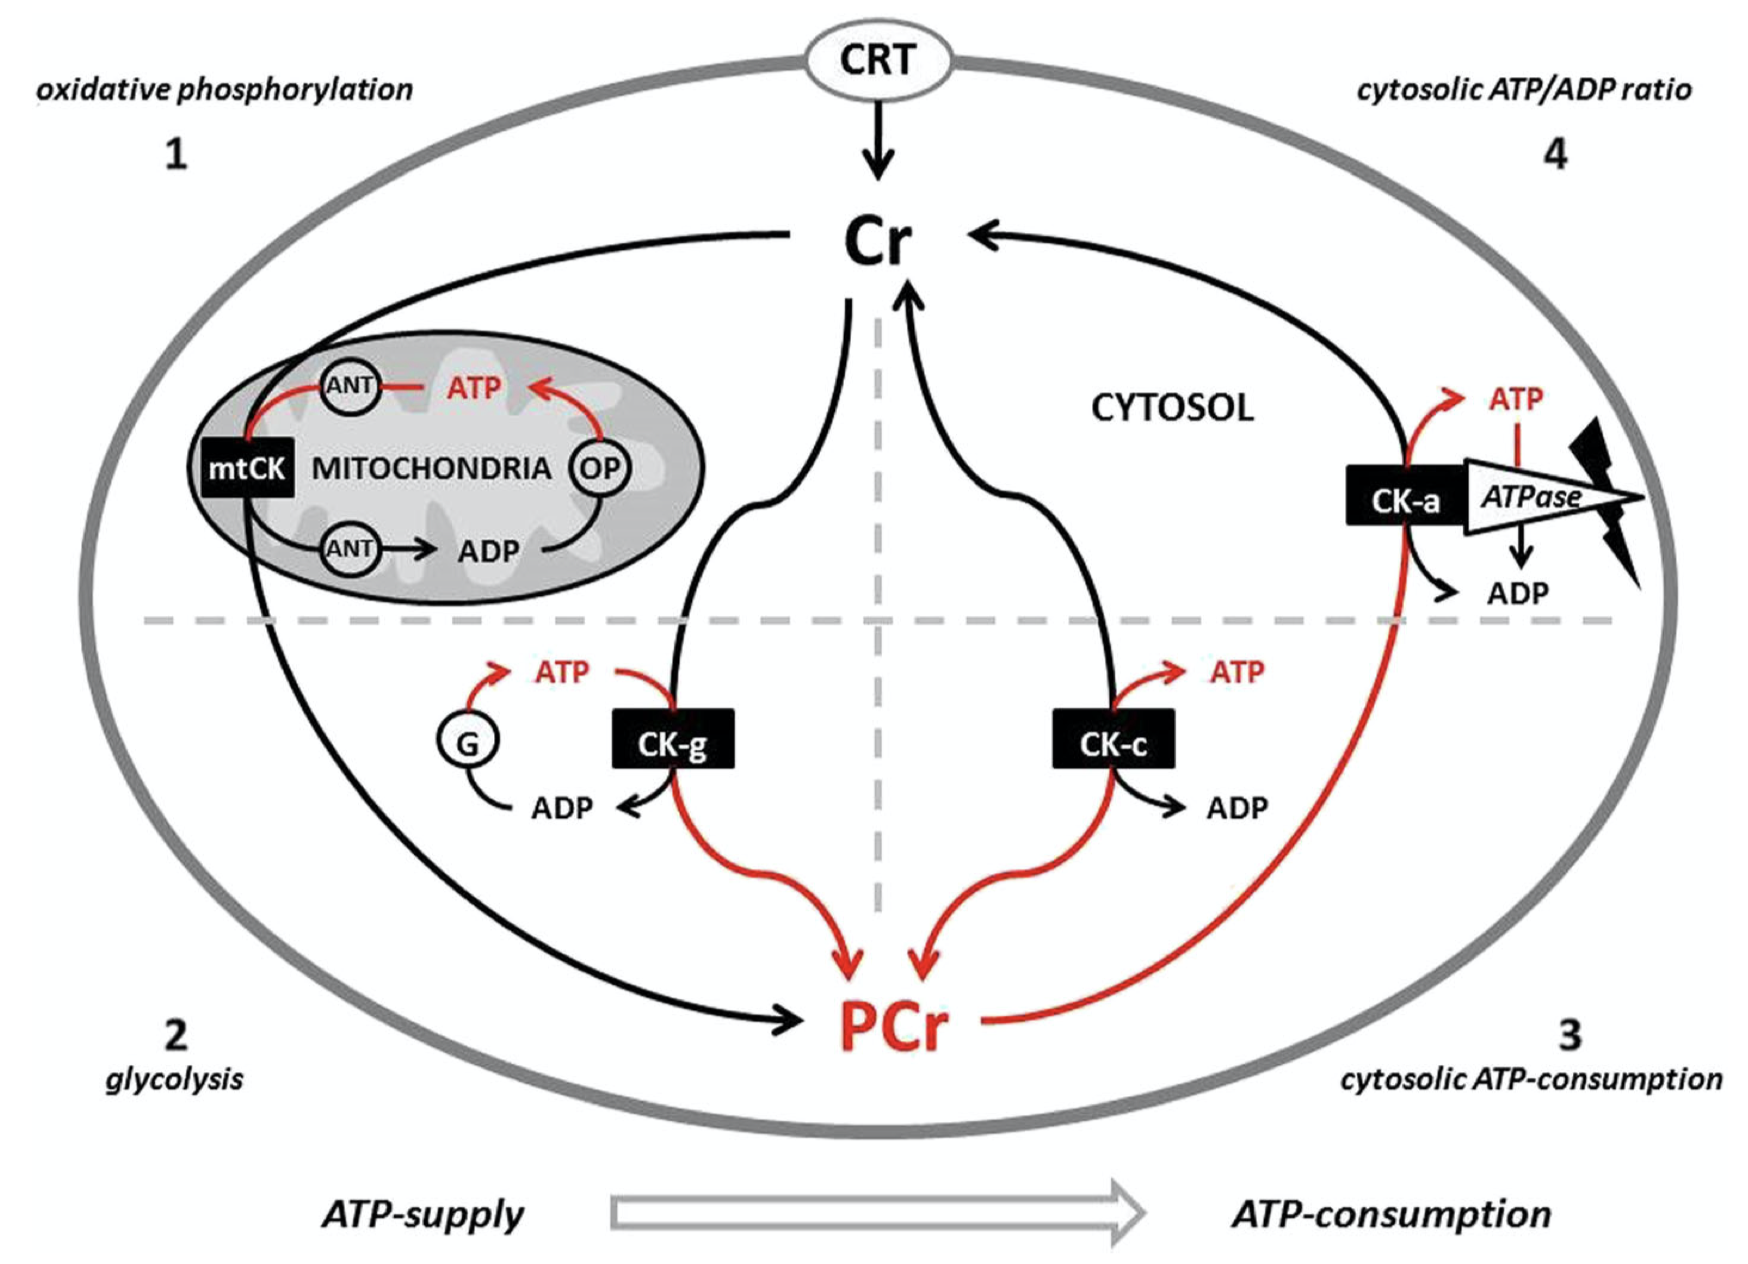 This image shows the creatine pathway within your body with the use of creatine kinase.